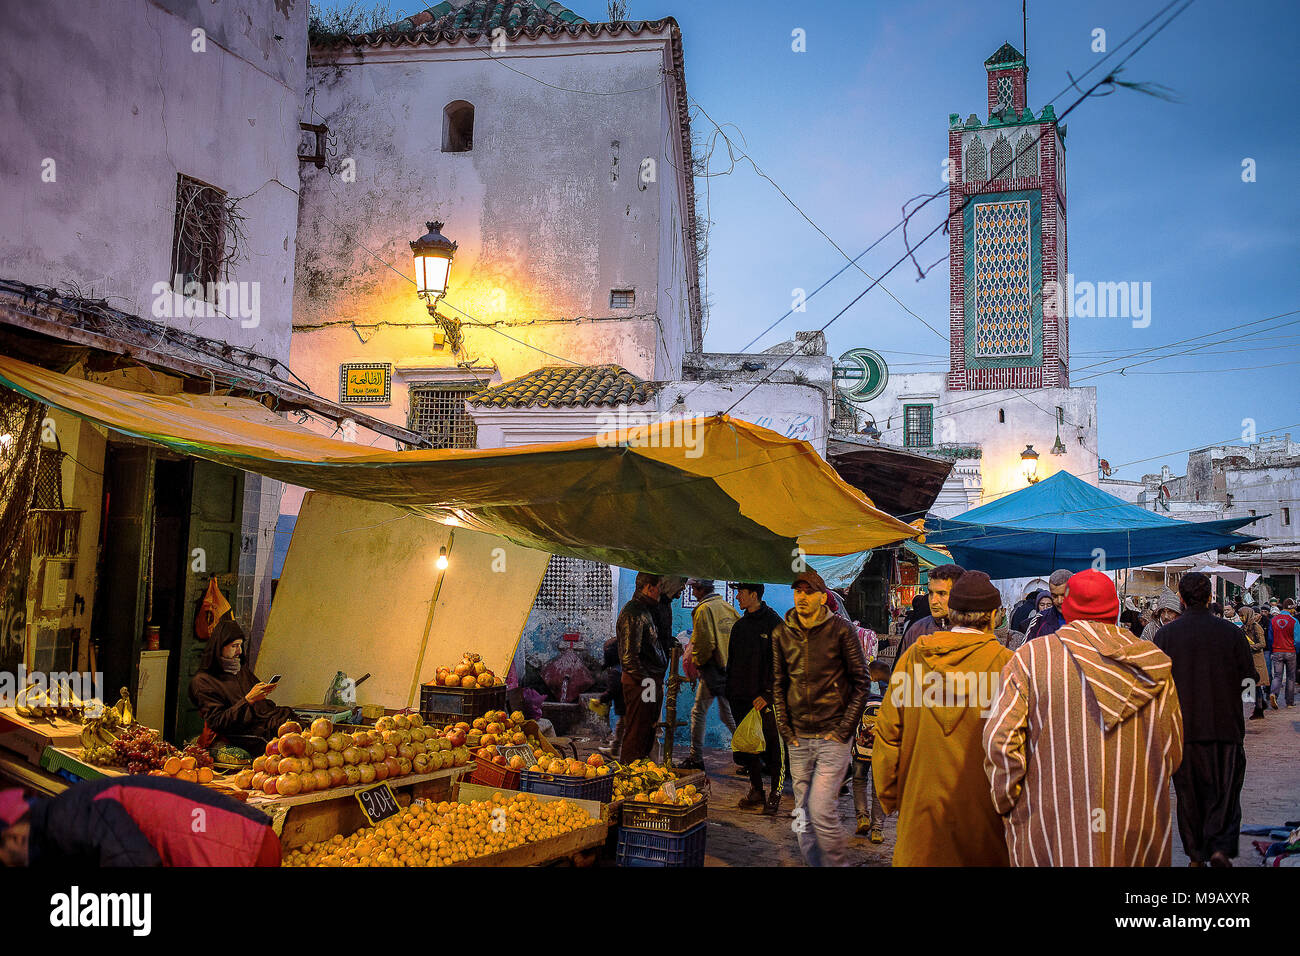 Ayuon street, in background Sidi Haj Ali Baraka Zaouia, medina, UNESCO World Heritage Site,Tetouan, Morocco Stock Photo